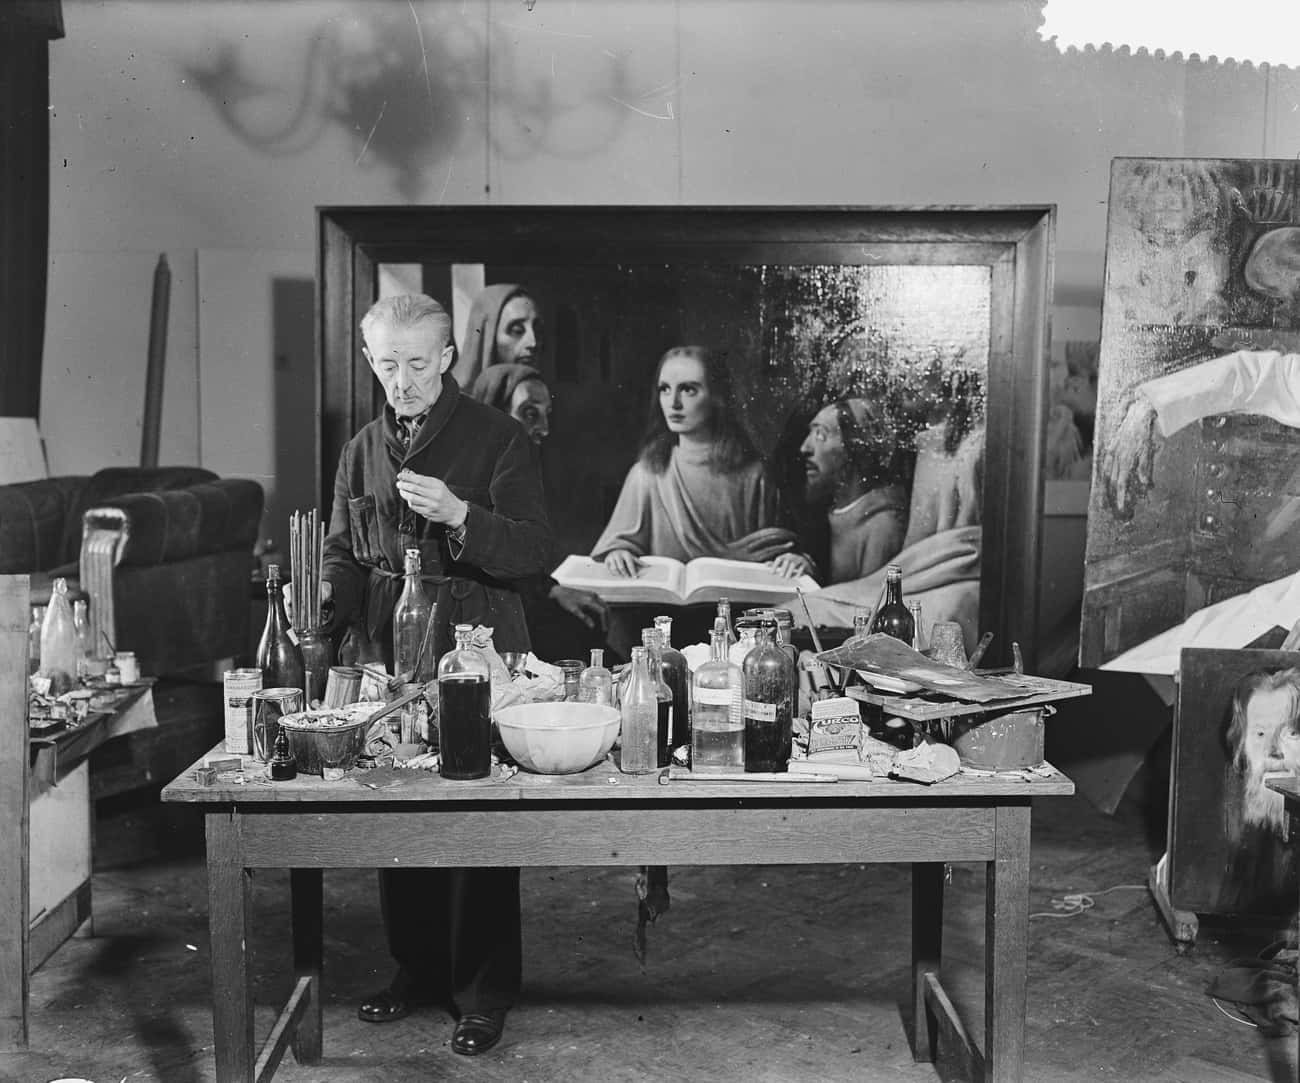 The Art Forger And The Reichsm is listed (or ranked) 2 on the list 14 Lesser-Known Stories From World War II That Should Be Made Into Movies